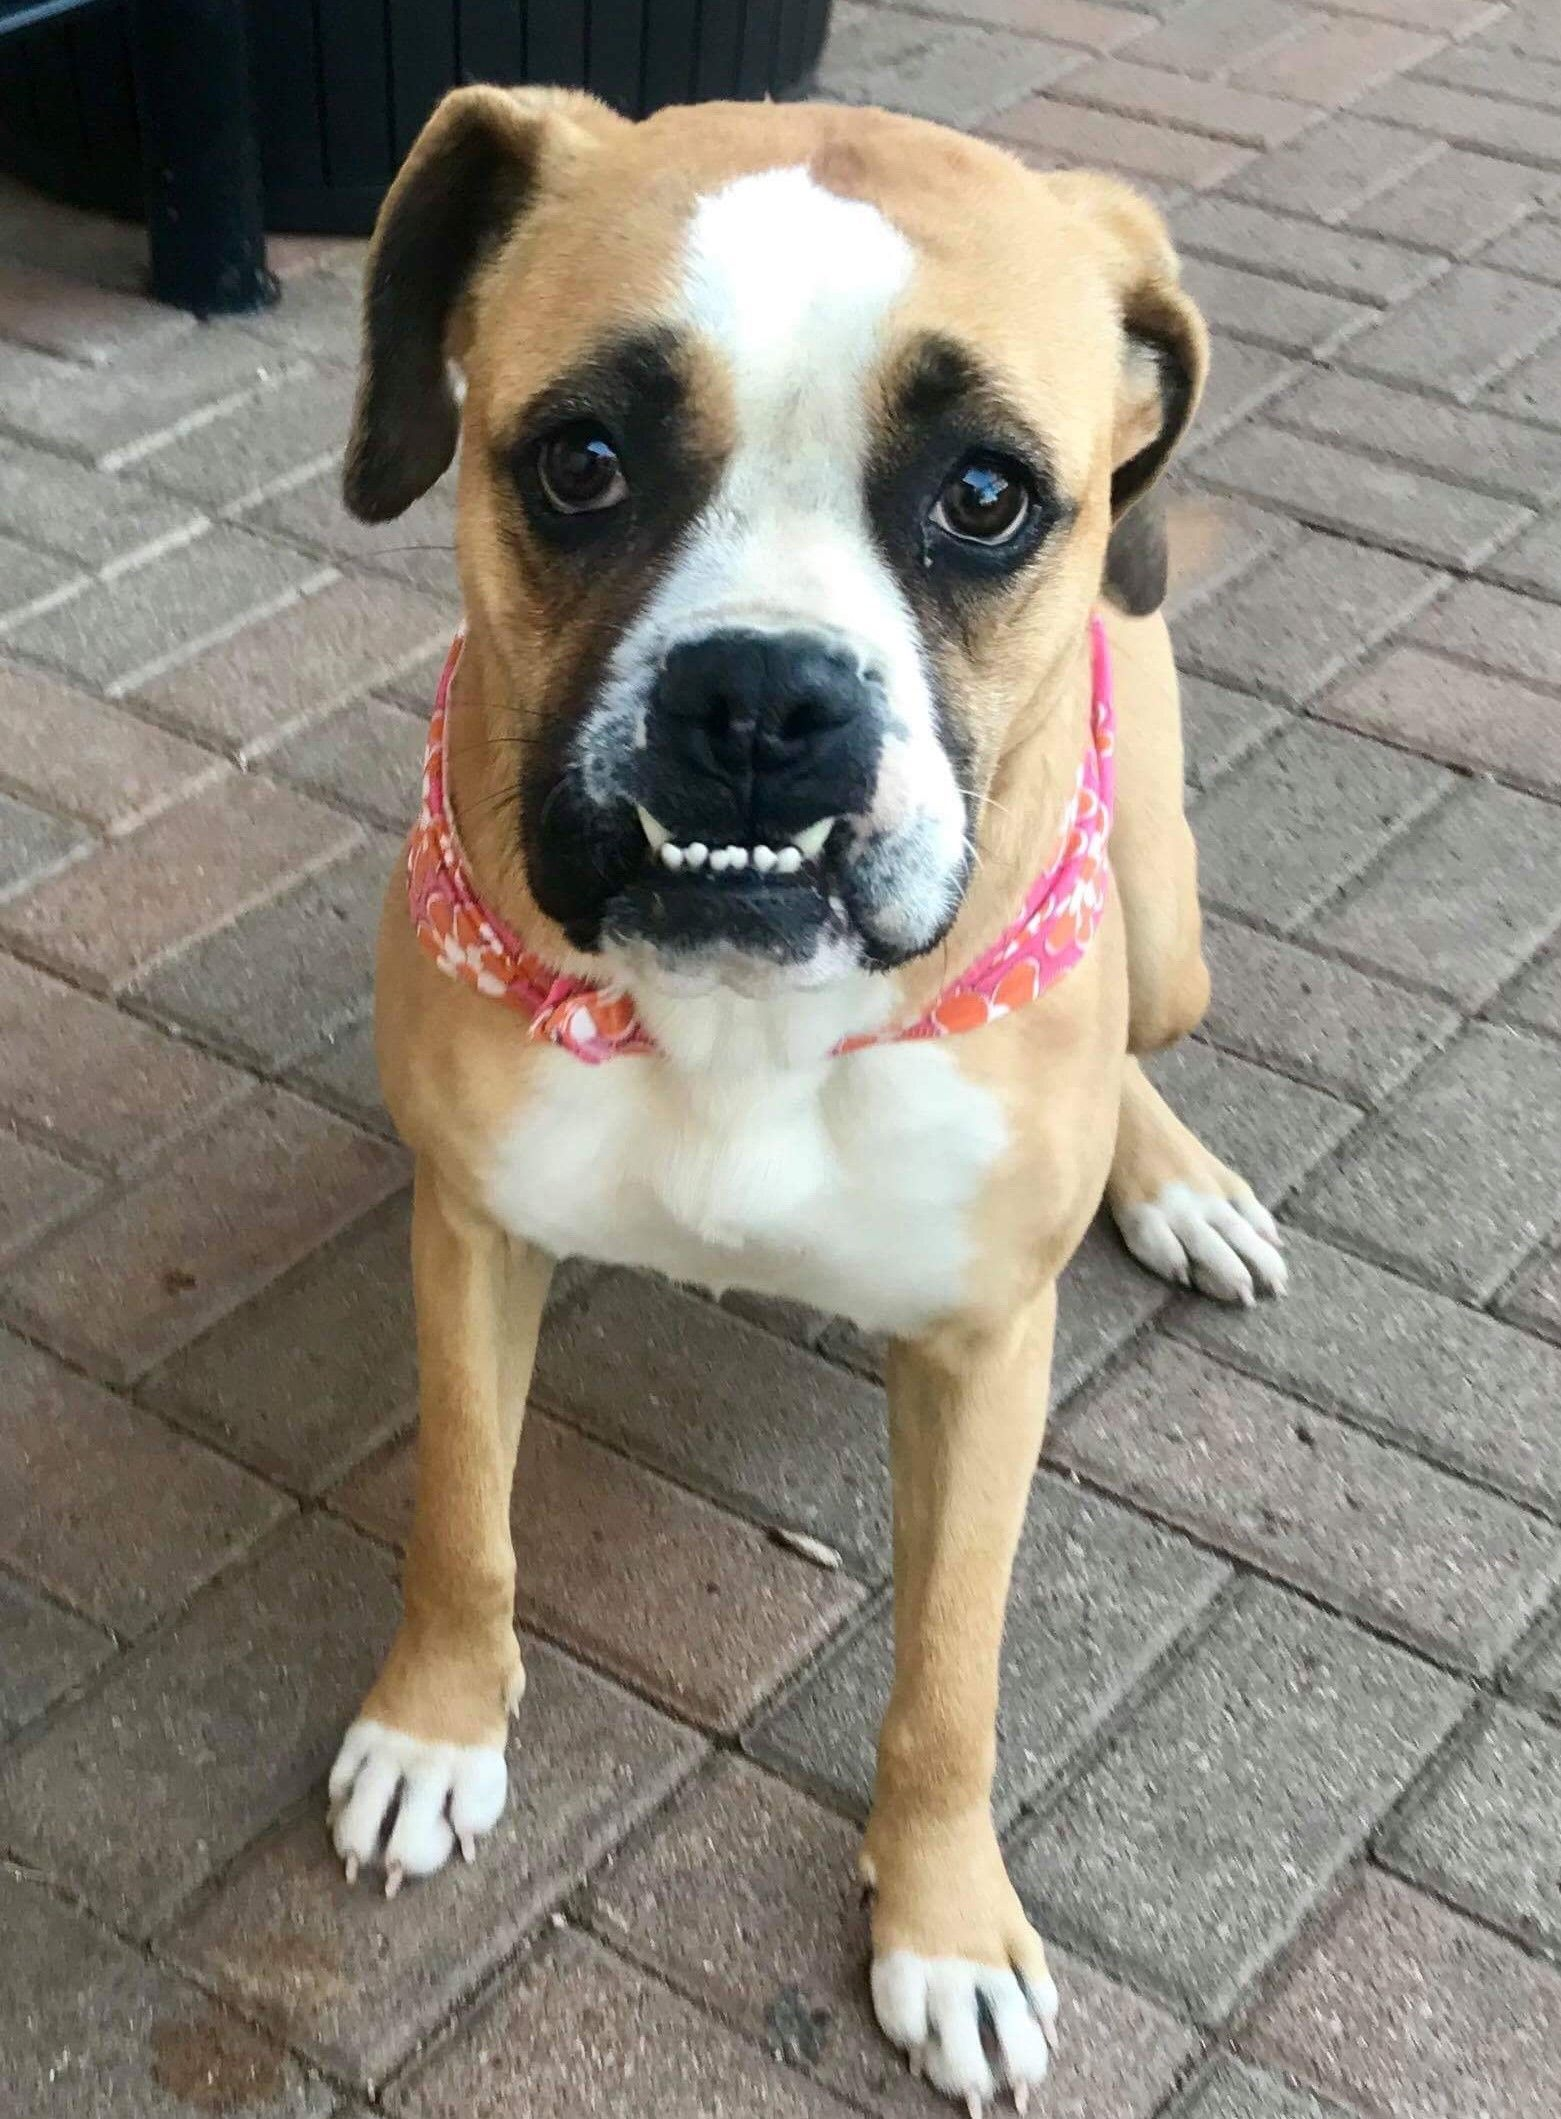 Boxer Dog For Adoption In Woodbury Mn Adn 784239 On Puppyfinder Com Gender Female Age Adult Boxer Dogs